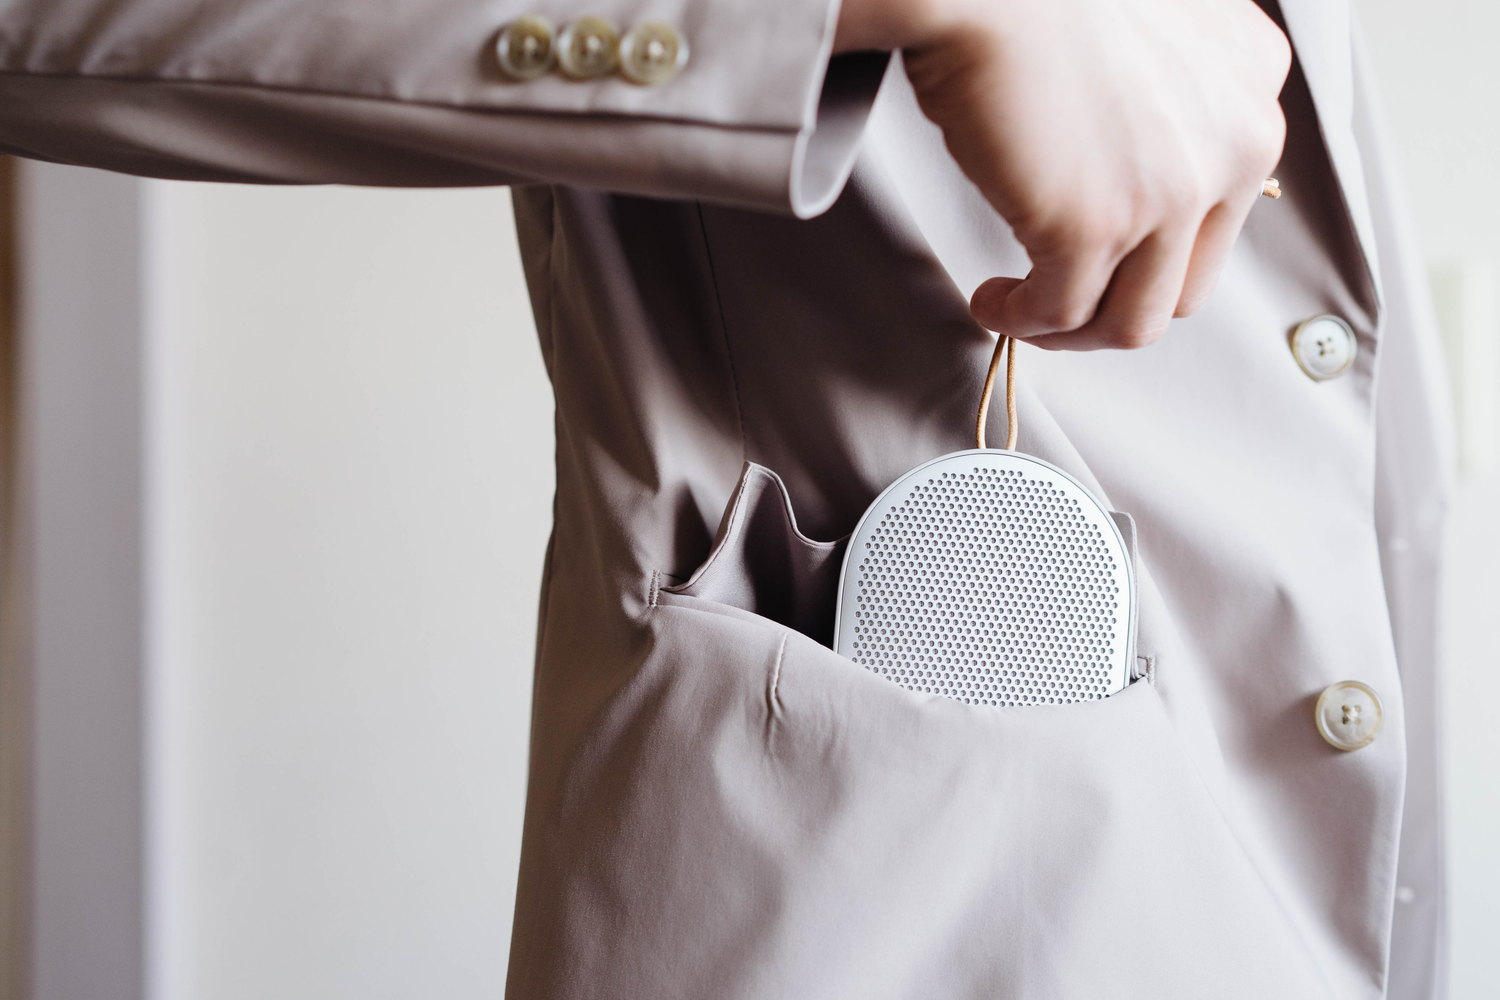 Beoplay P2 をポケットに